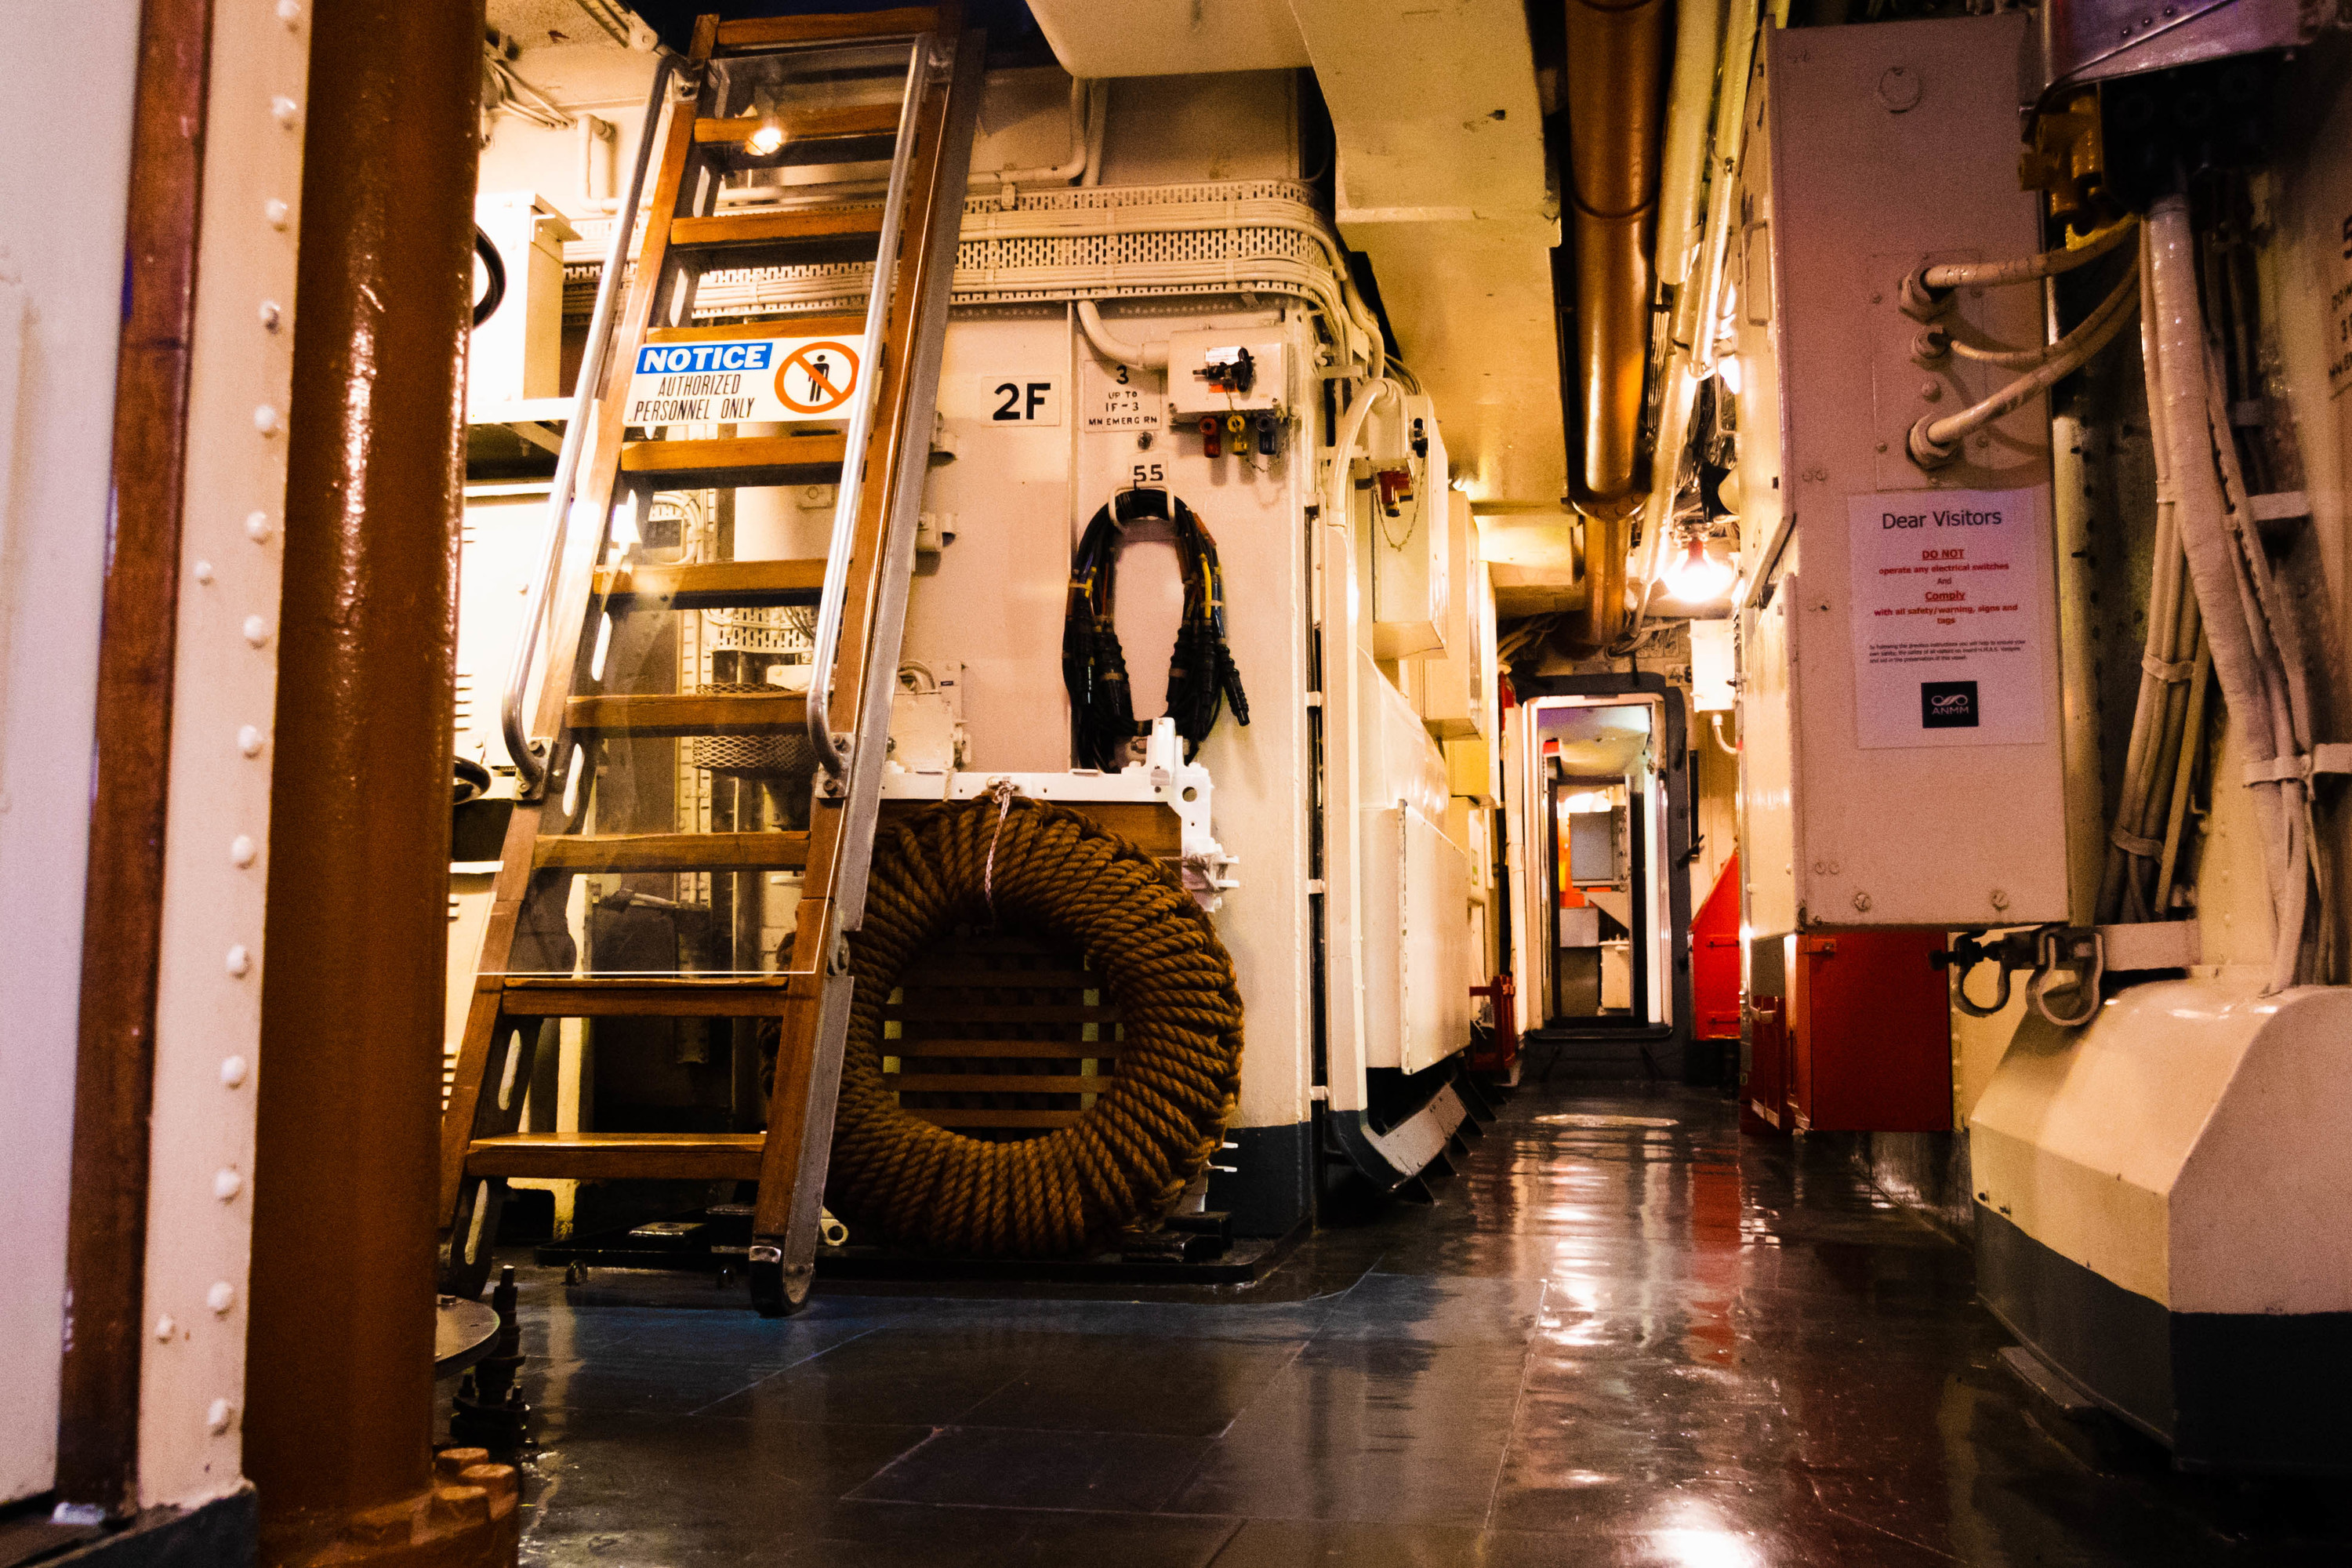 Inside the Navy Destroyer HMAS Vampire at the Australian National Maritime Museum.